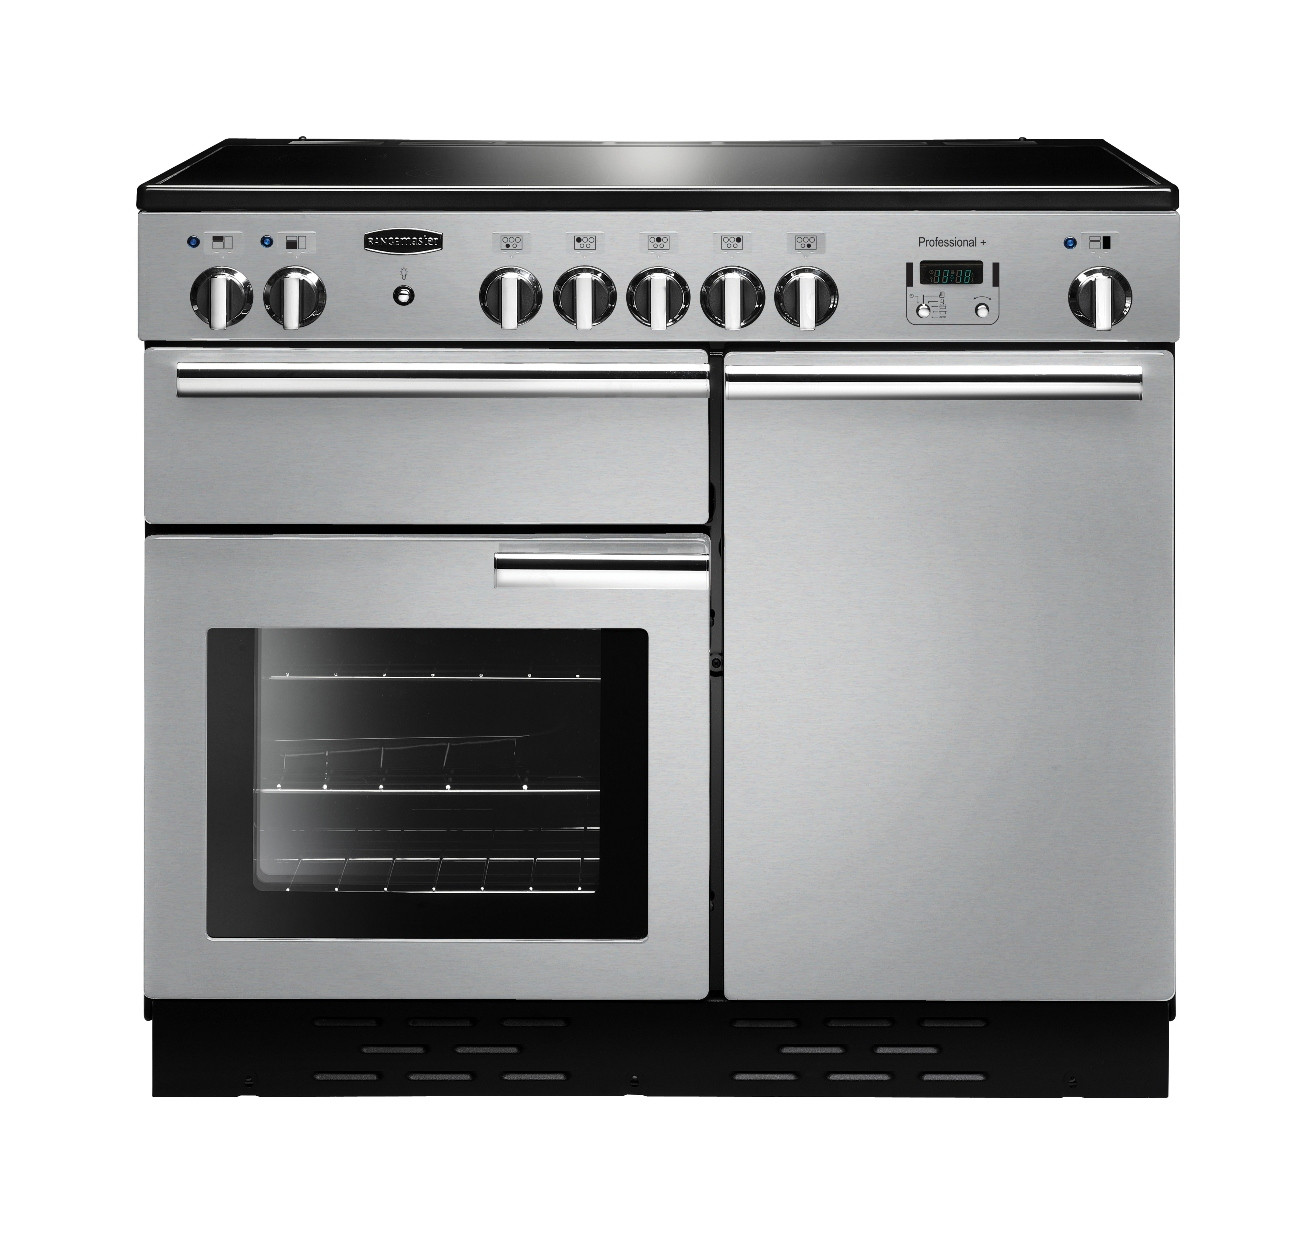 Rangemaster Professional Plus 100 Induction Stainless Steel Range Cooker 96020